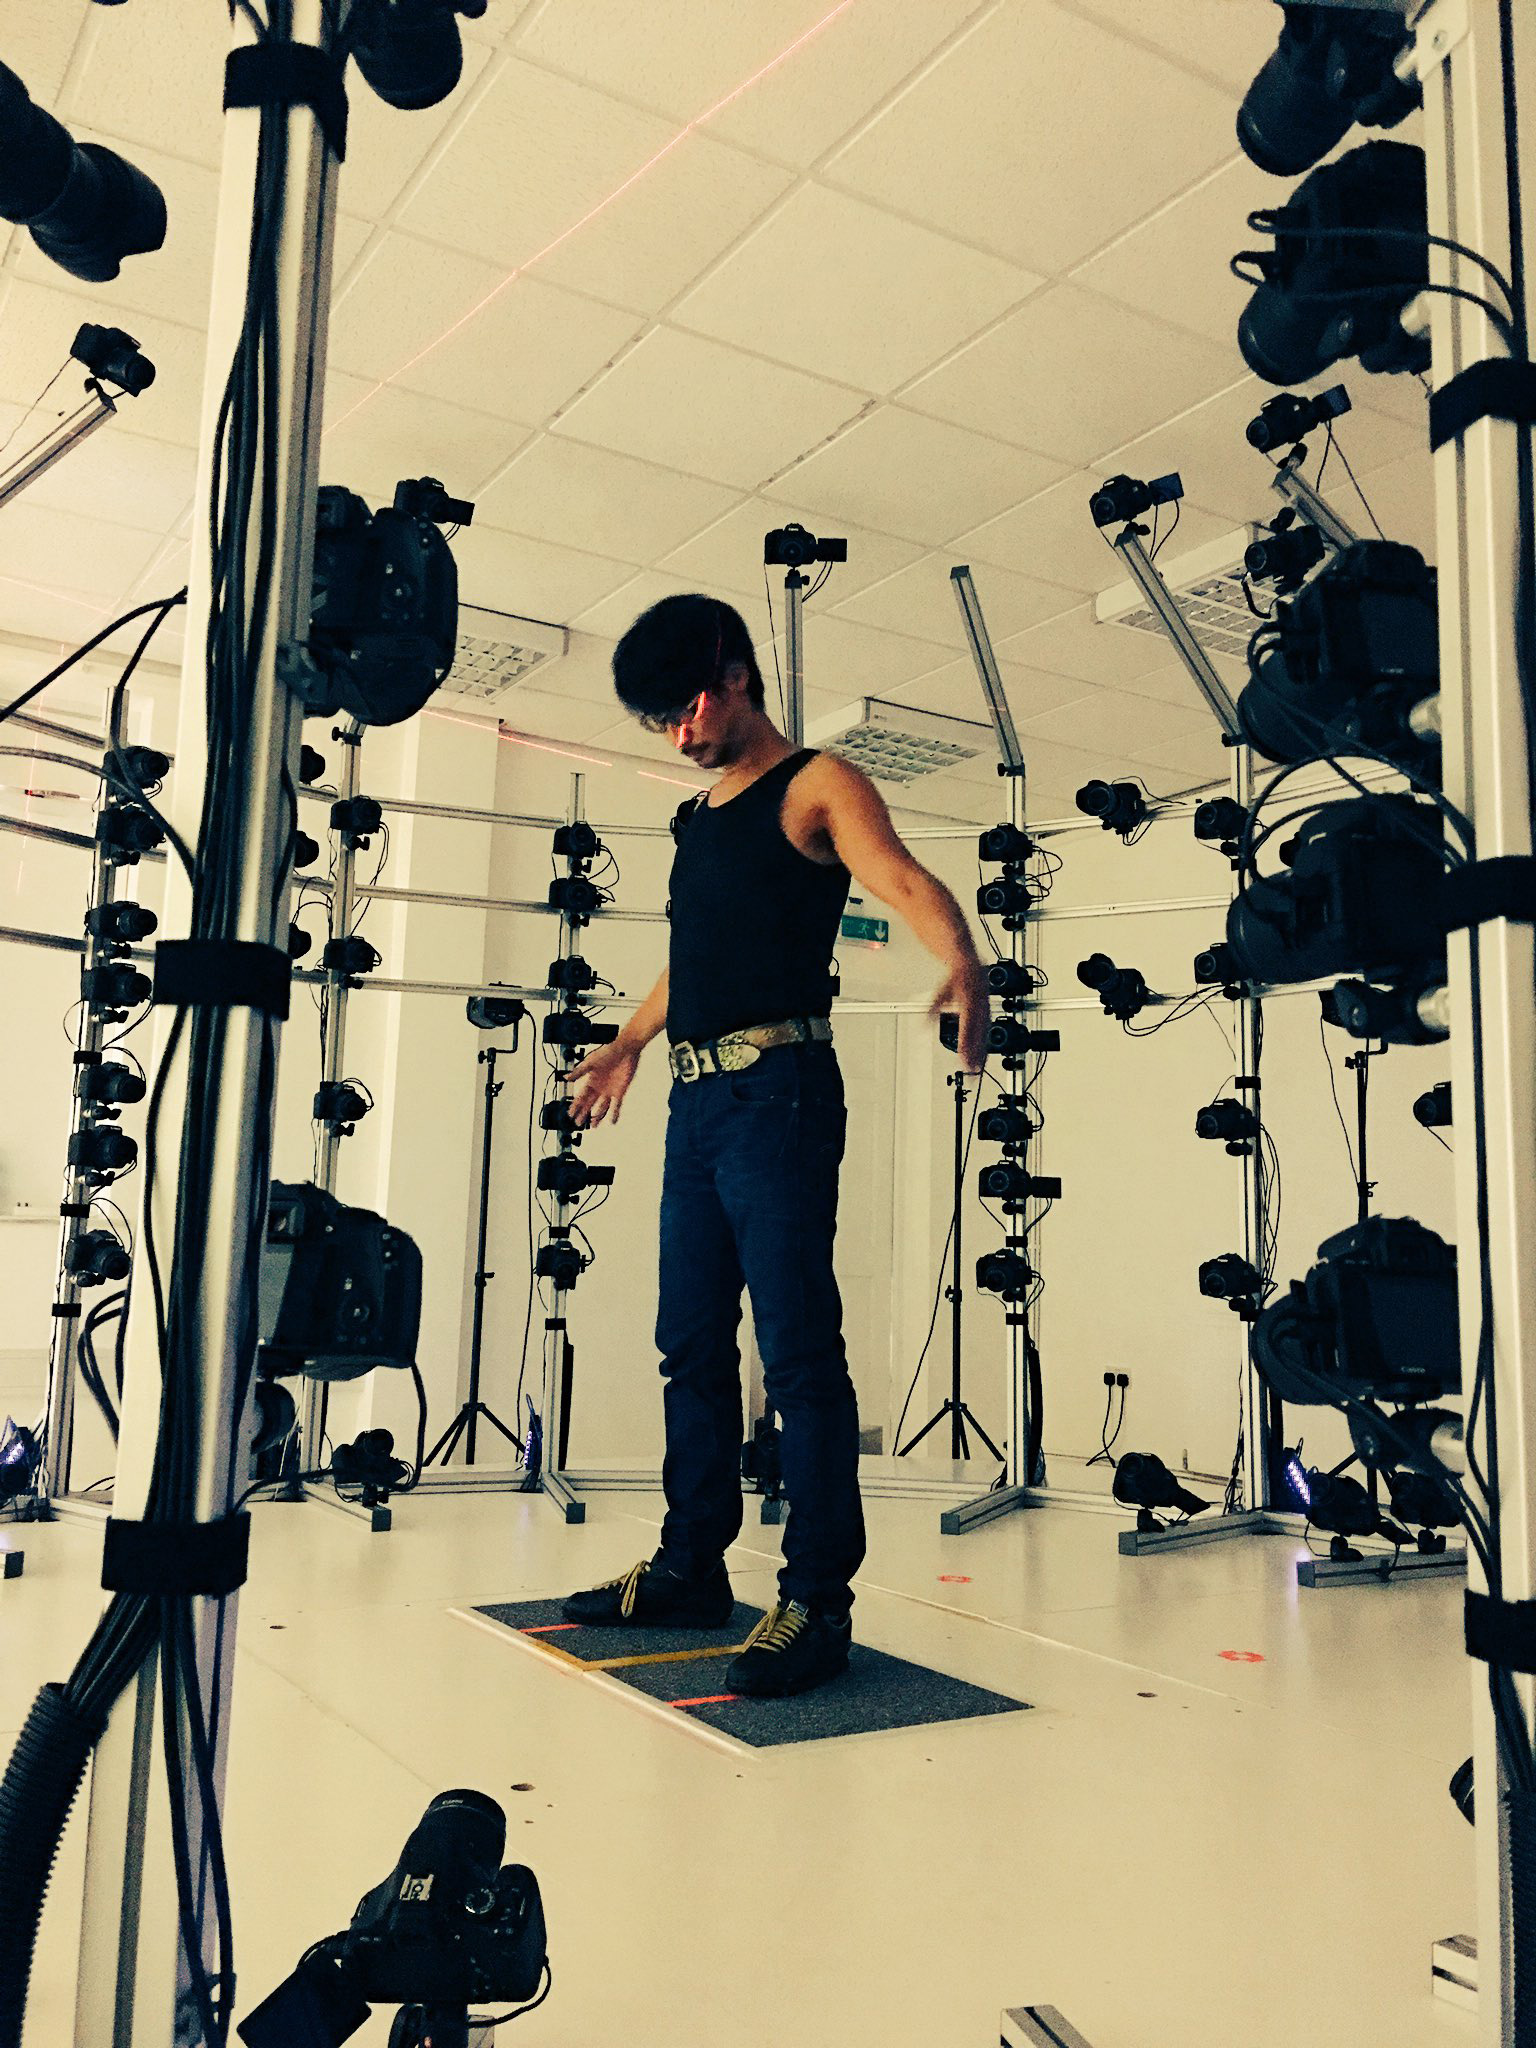 Hideo-Kojima-Today-August-23